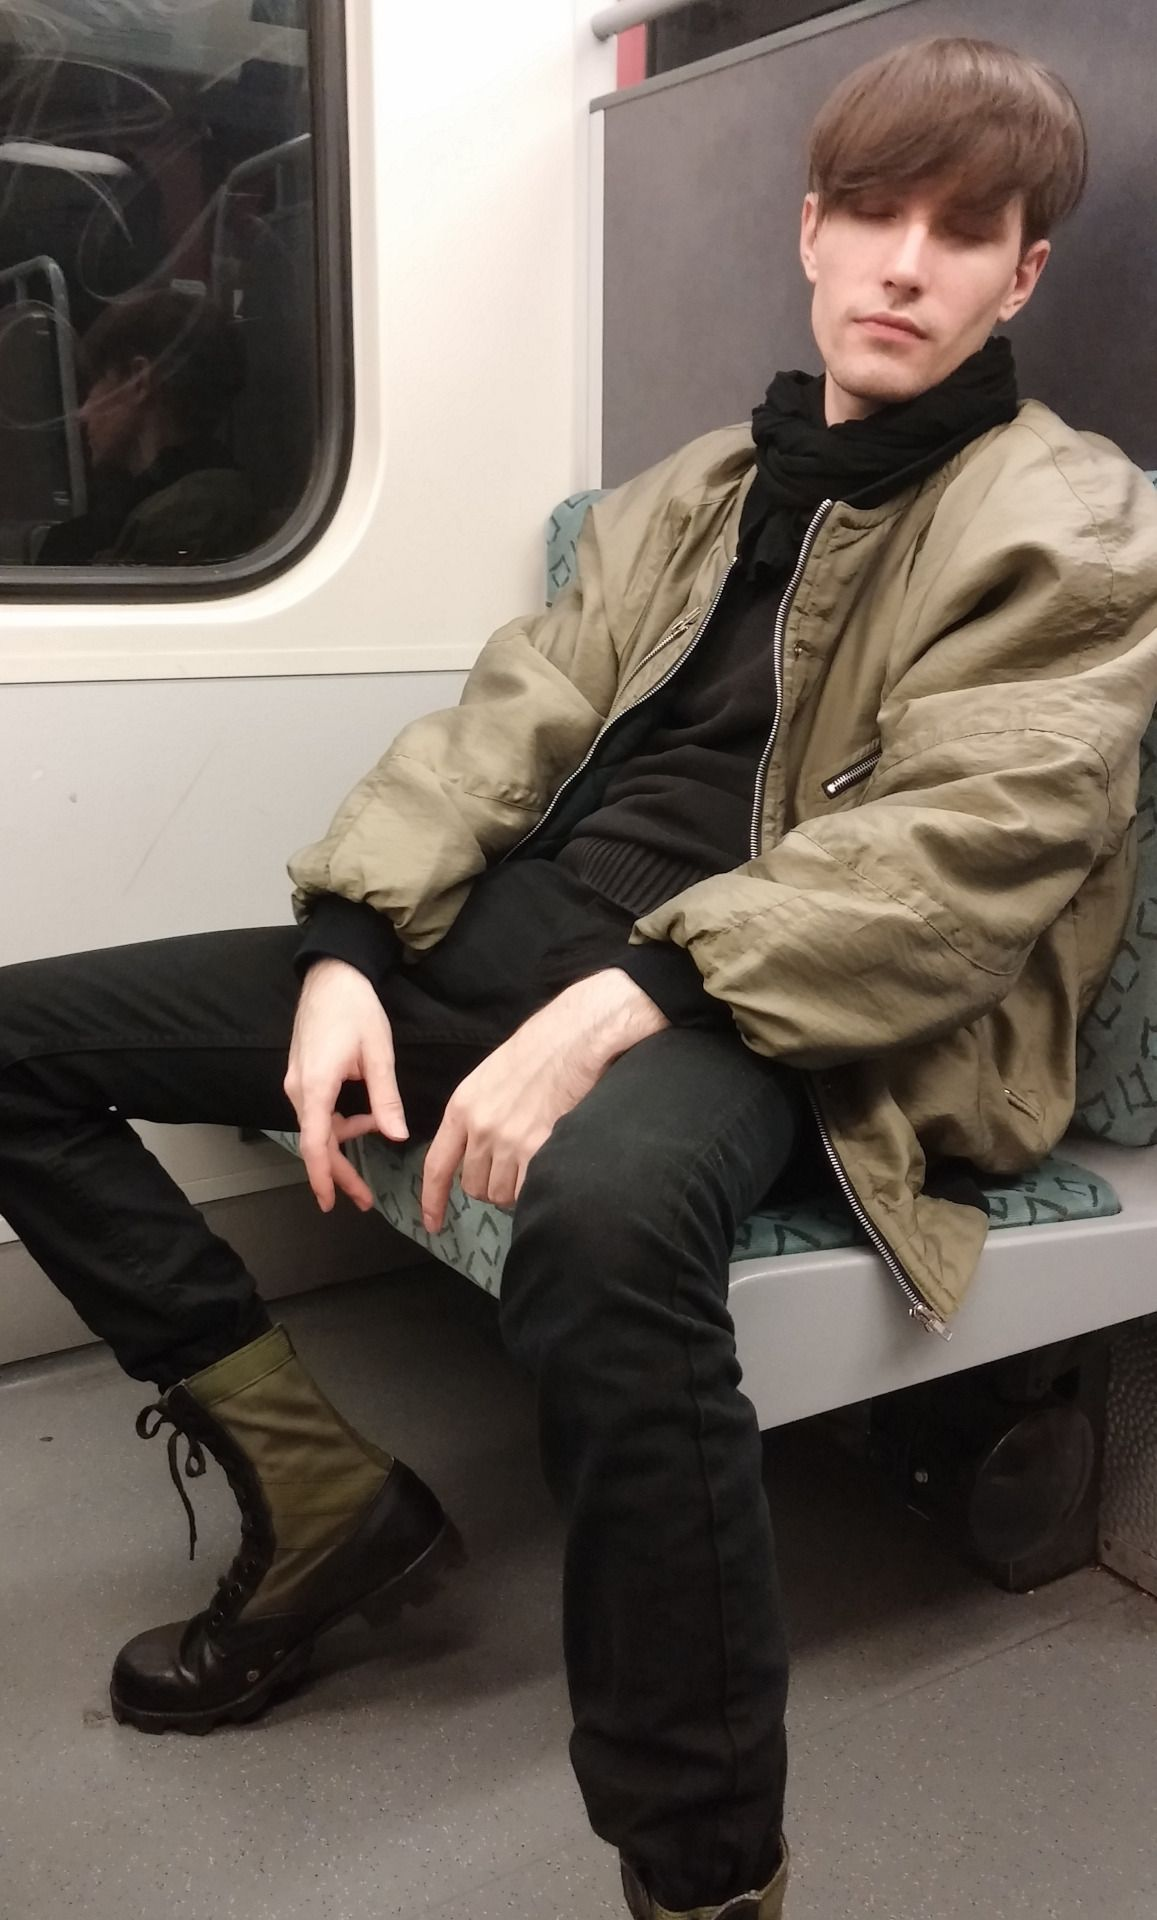 all baggied out after berghain http://youtu.be/trqL3pzE8rg